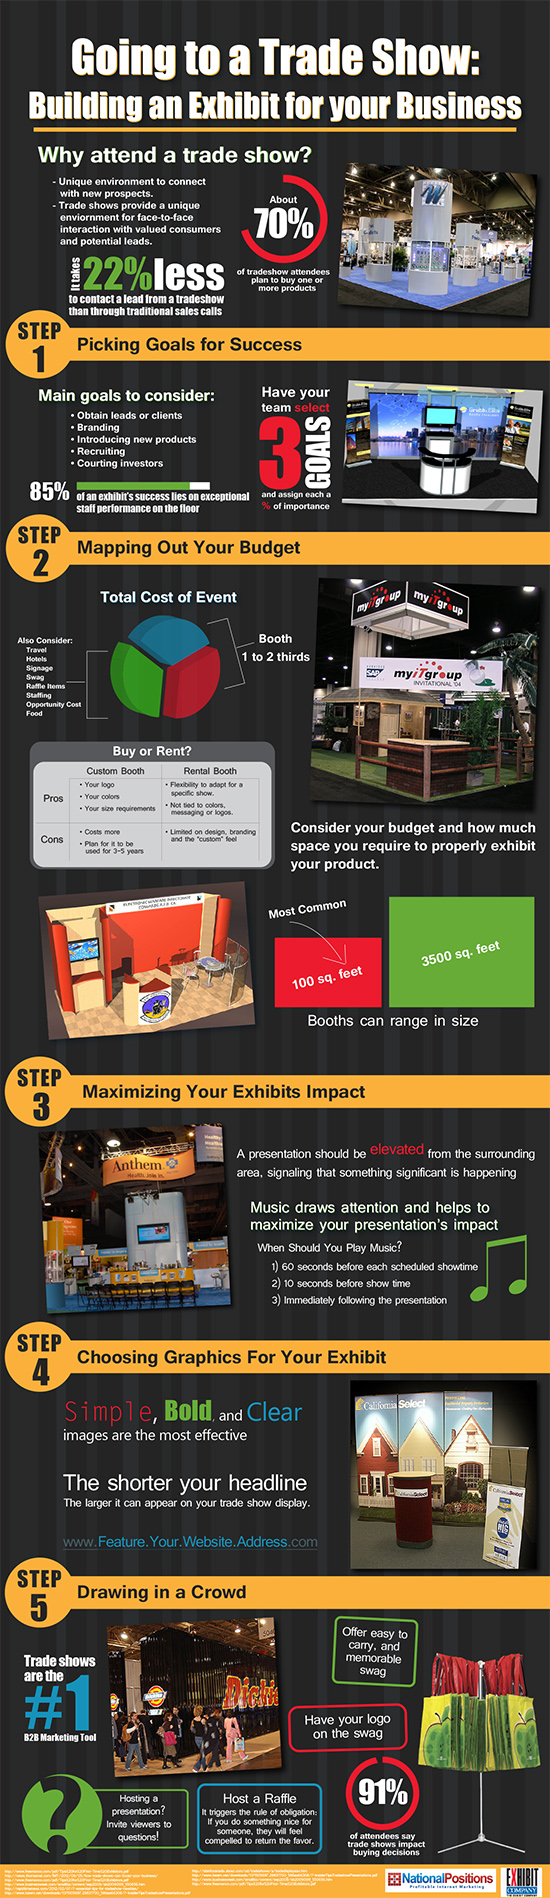 Going to a Trade Show: Building an Exhibit for your Business